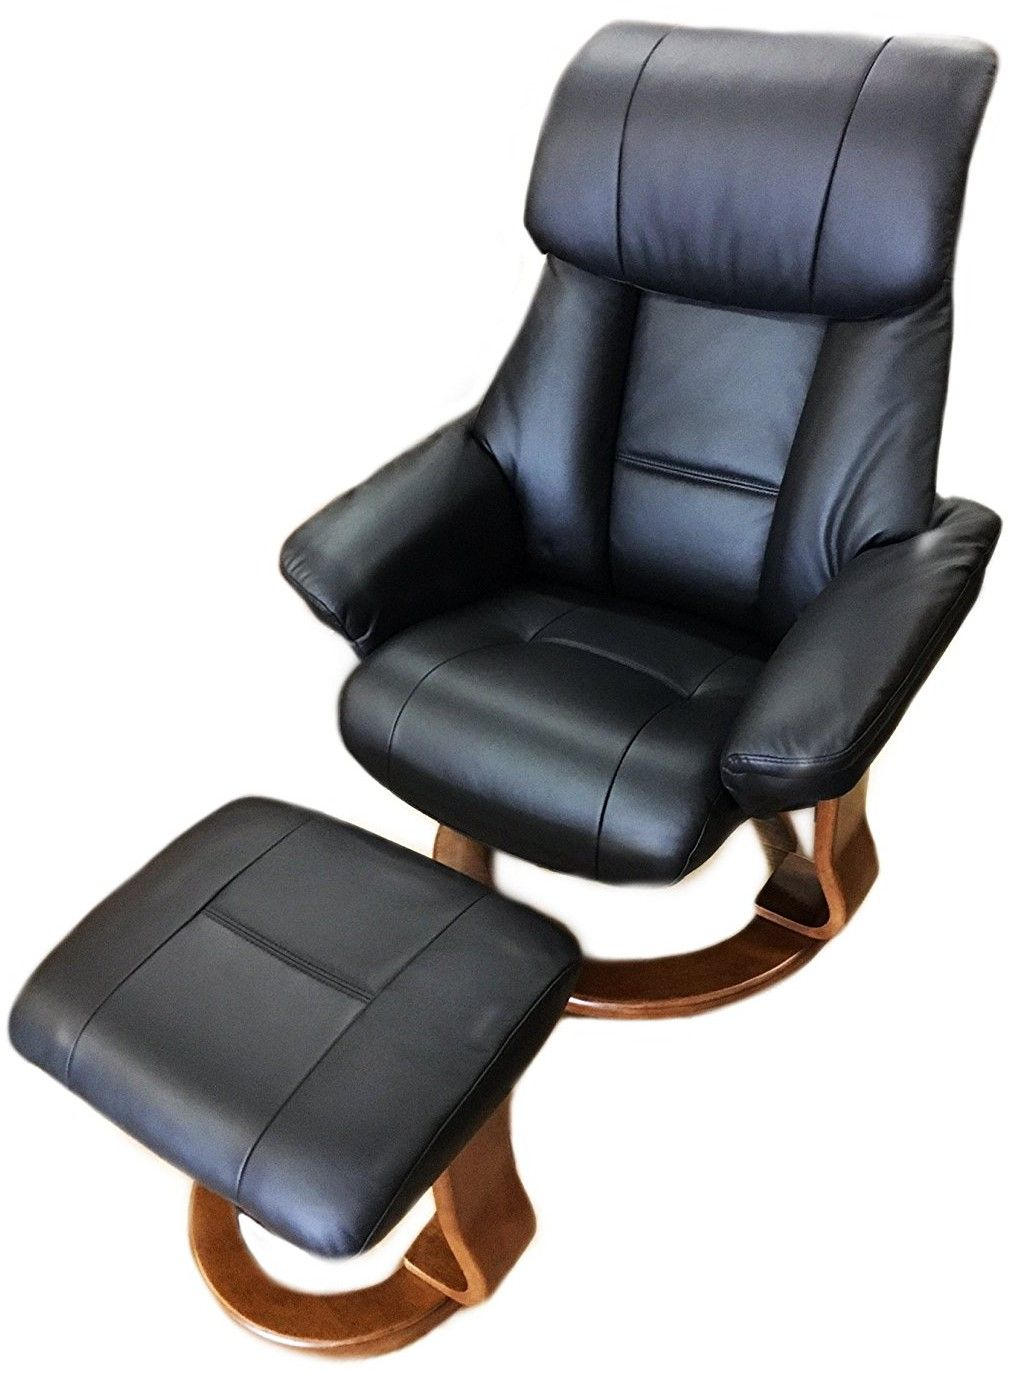 black leather recliner chair with ottoman